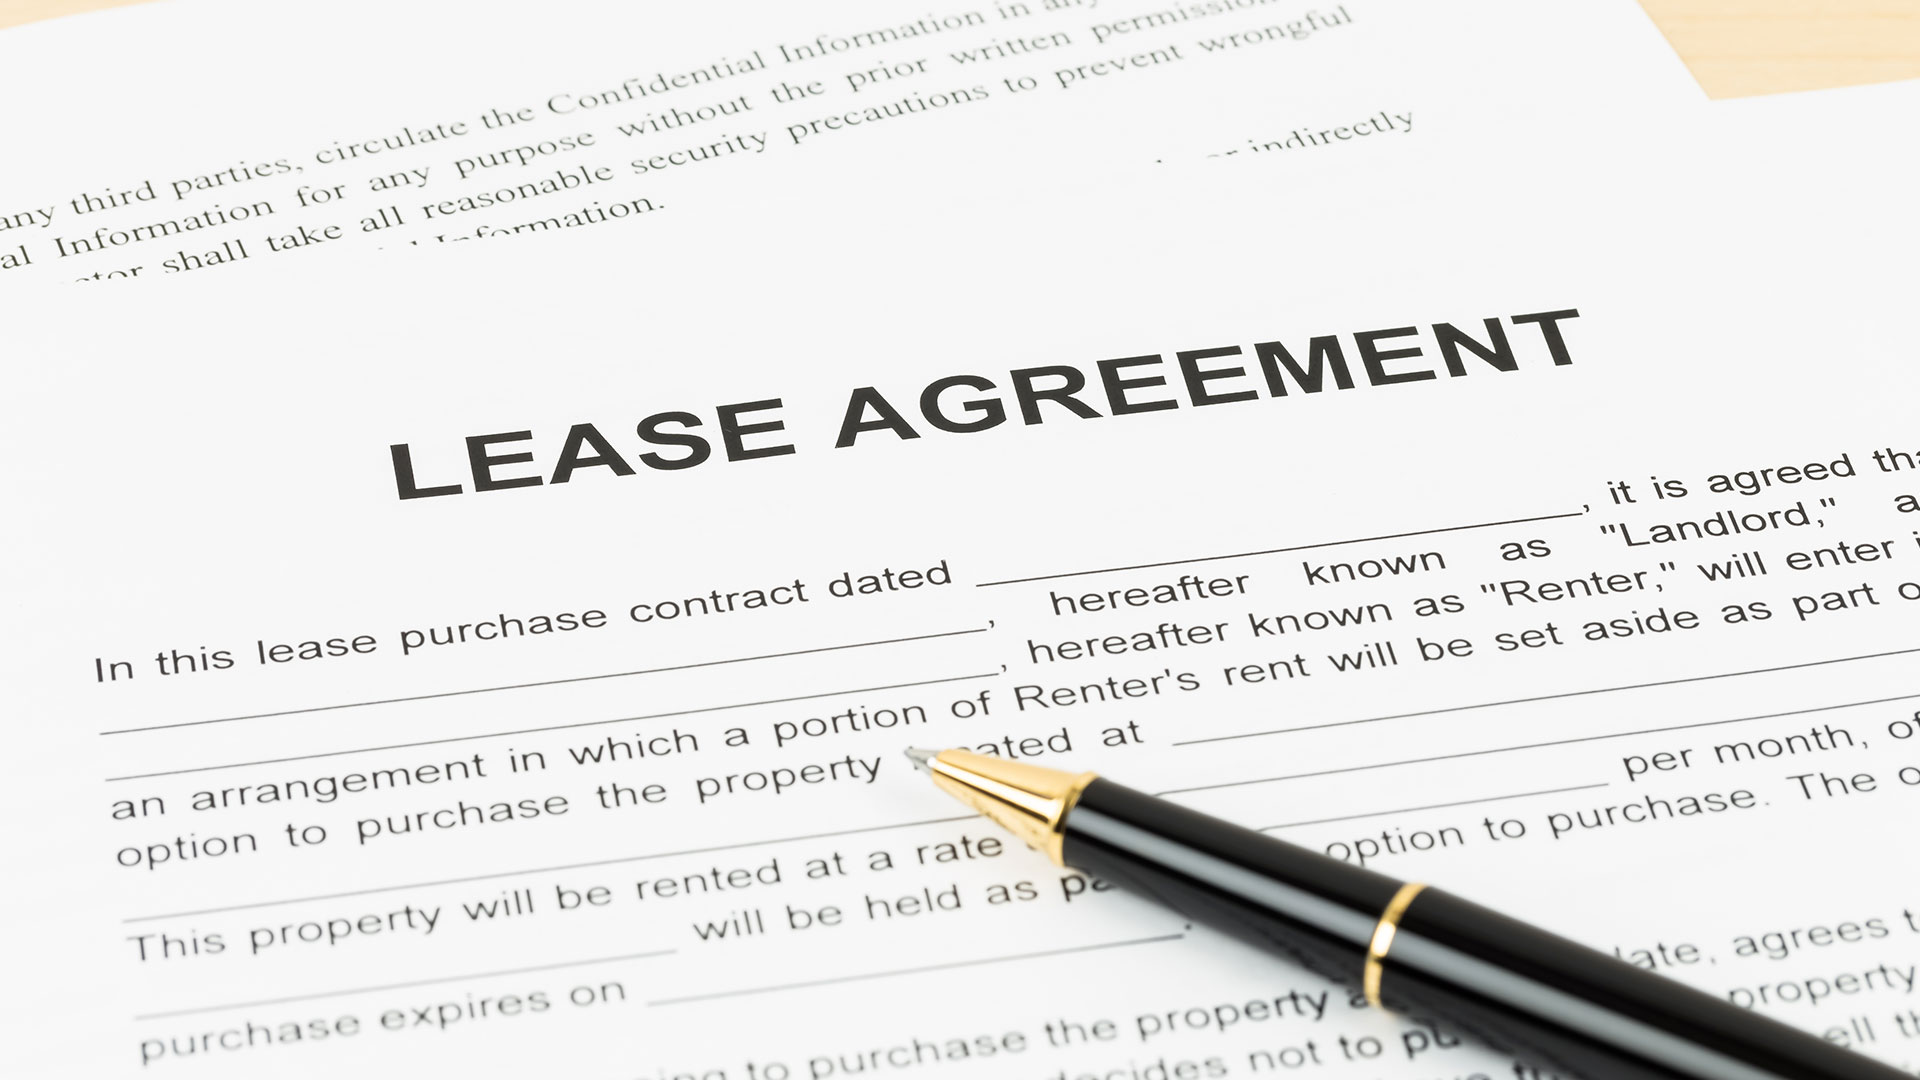 Lease agreement document